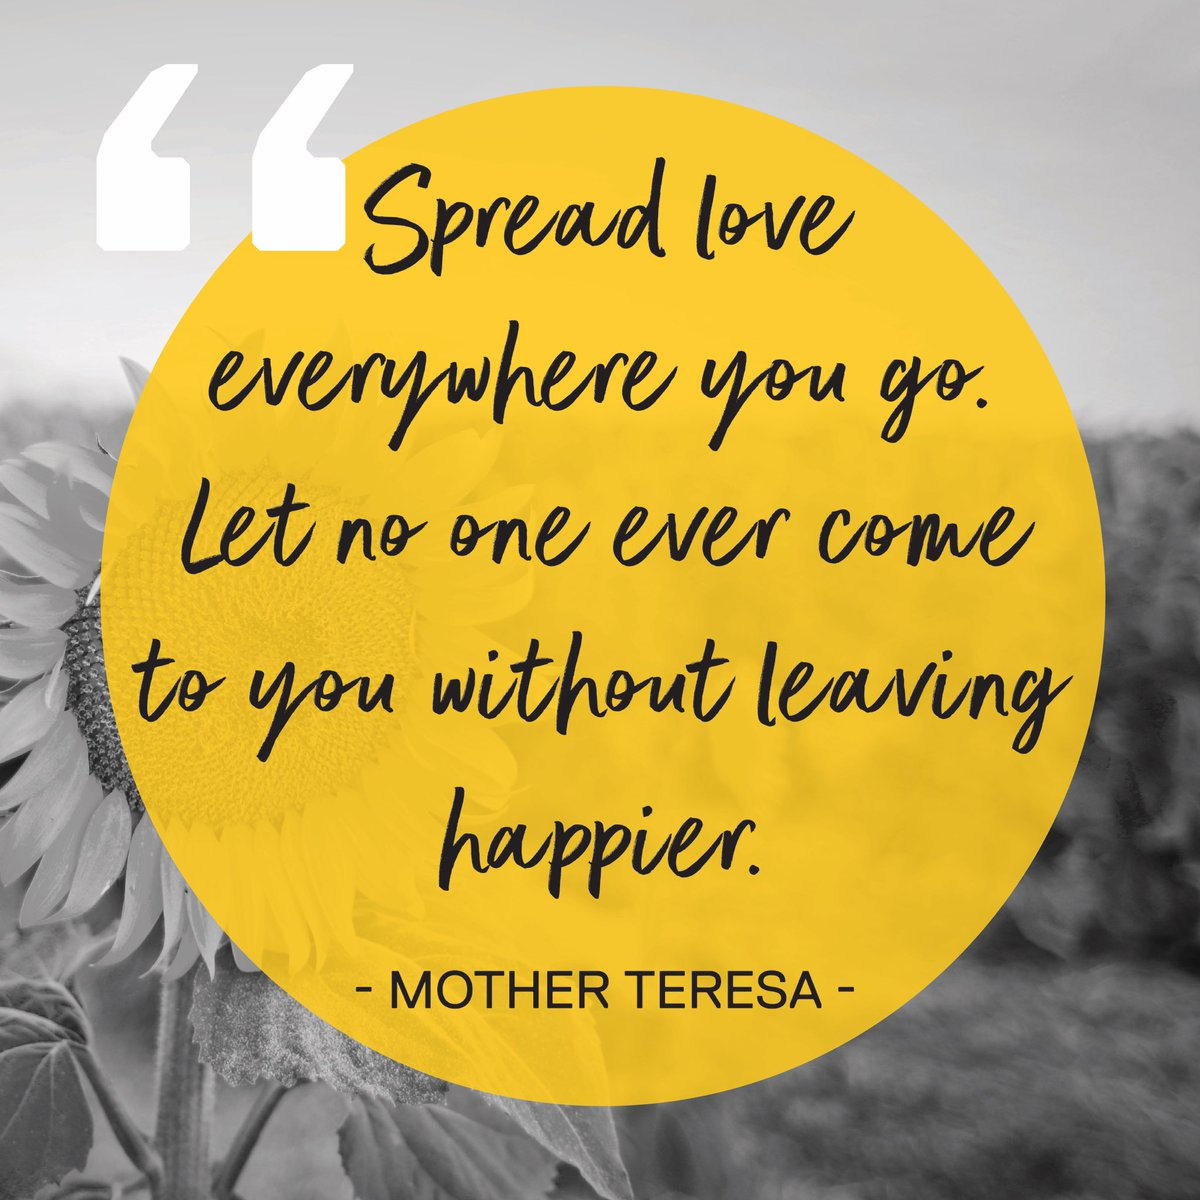 Such a beautiful quote. #love #wellbeing #quote #inspiring